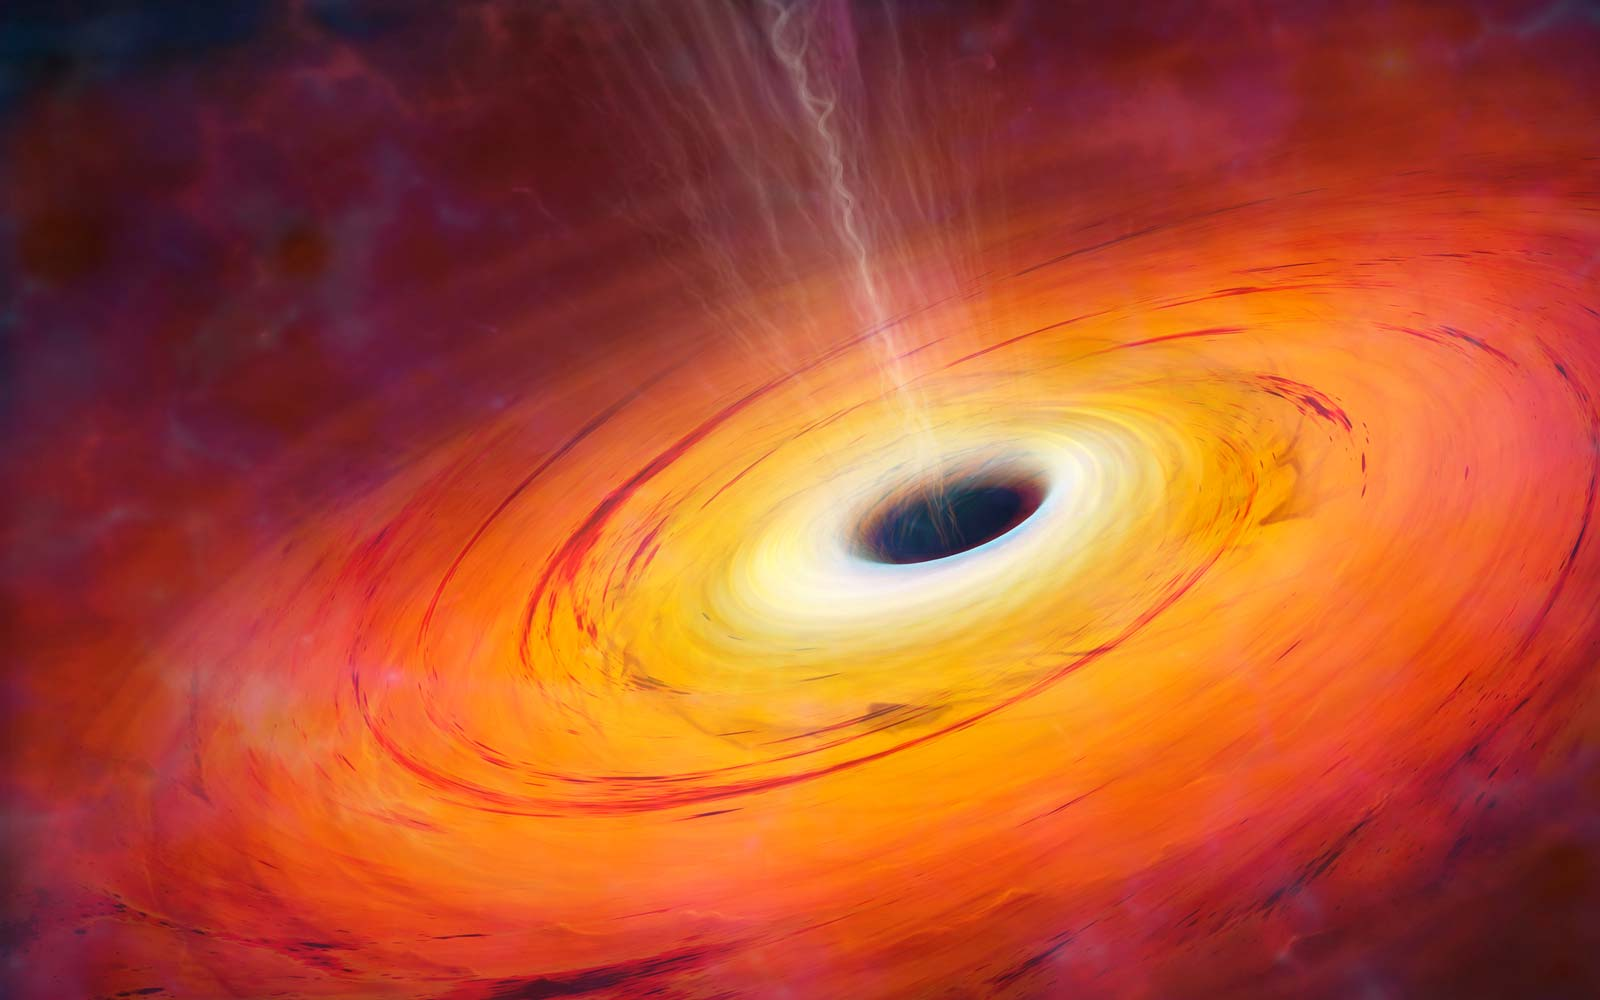 A 29-year-old Female Scientist Was Behind That Groundbreaking Black Hole Photo